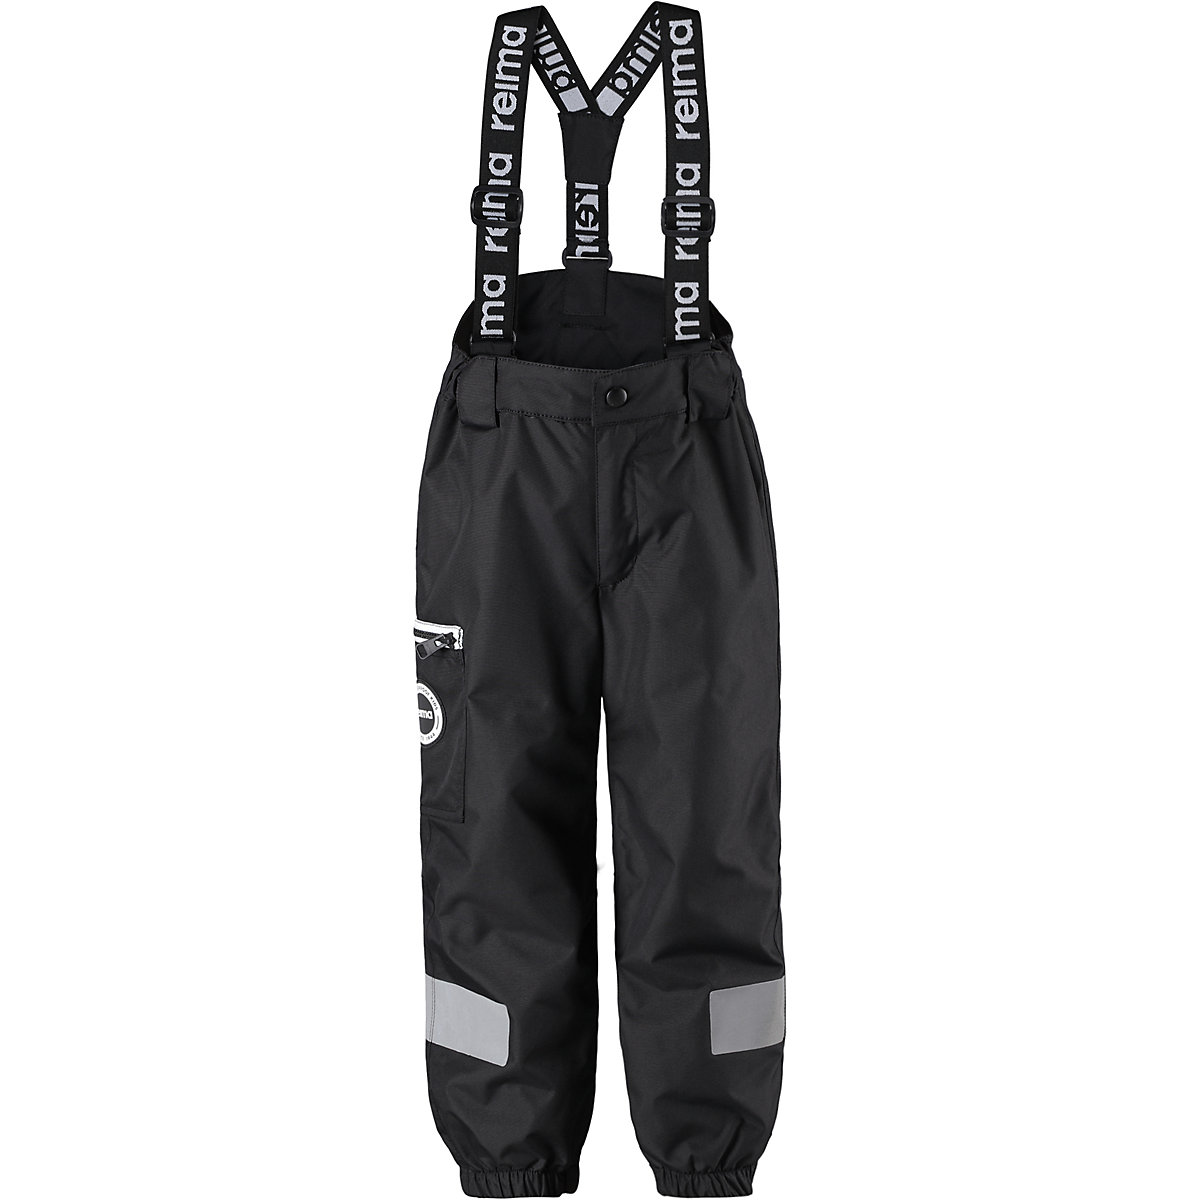 Pants & Capris Reima 8689276 for boys and girls polyester autumn winter arsuxeo 60017k outdoor cycling polyester lycra bike pants for men black dark green size l